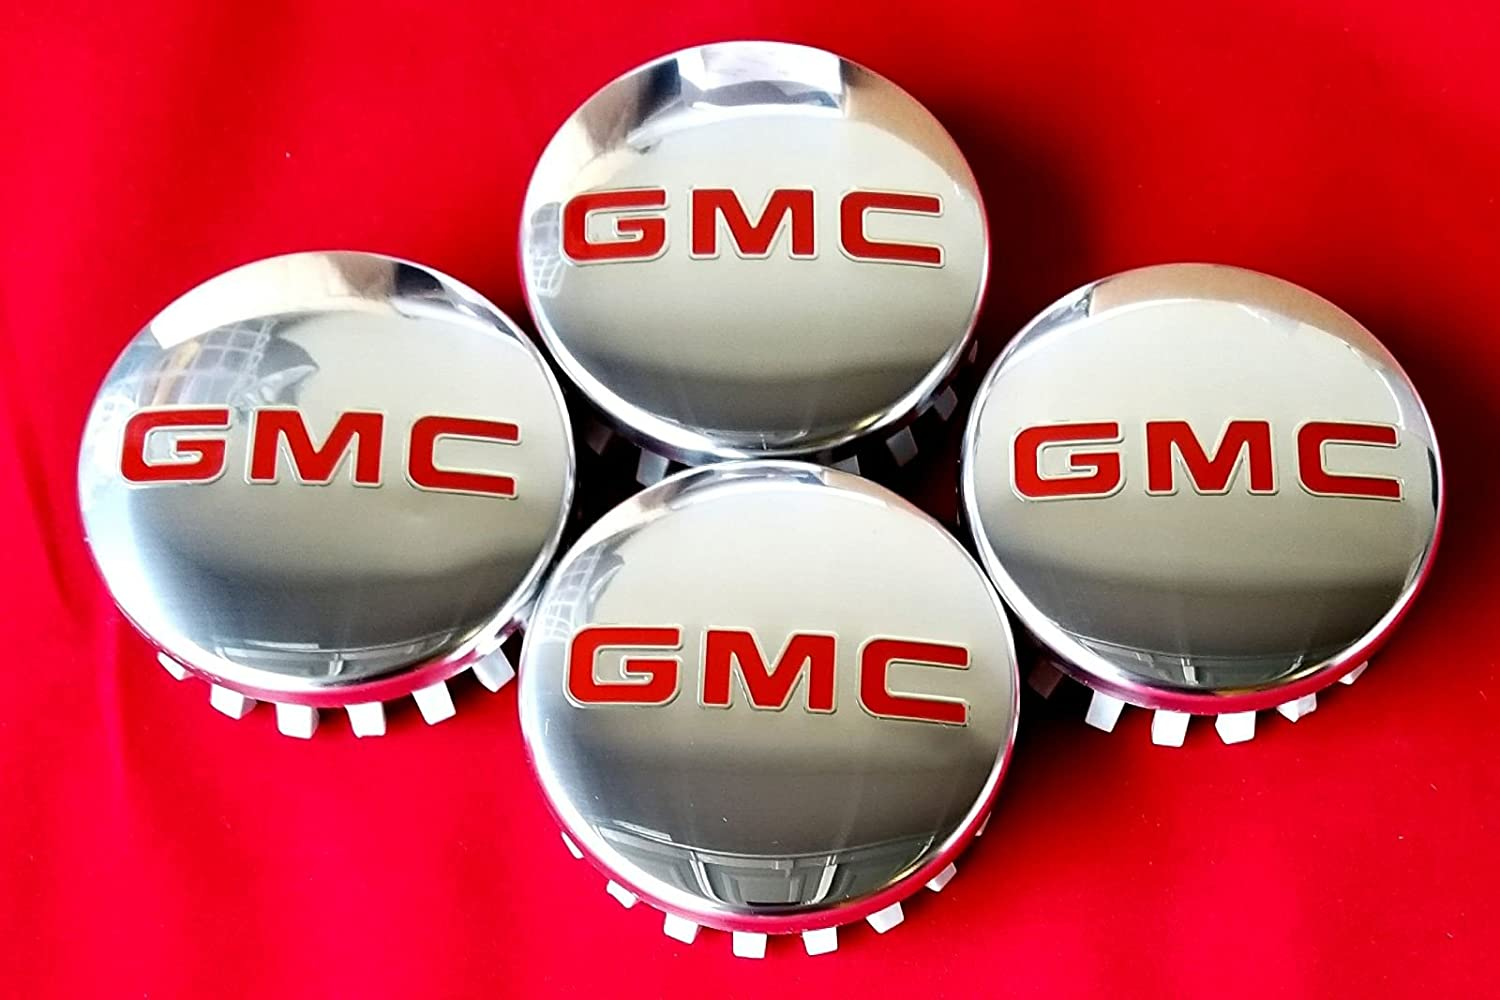 GMC Polished Aluminum Wheel Center Caps 22837060 83mm 3.25' Sierra Yukon Denali JDM WORLD